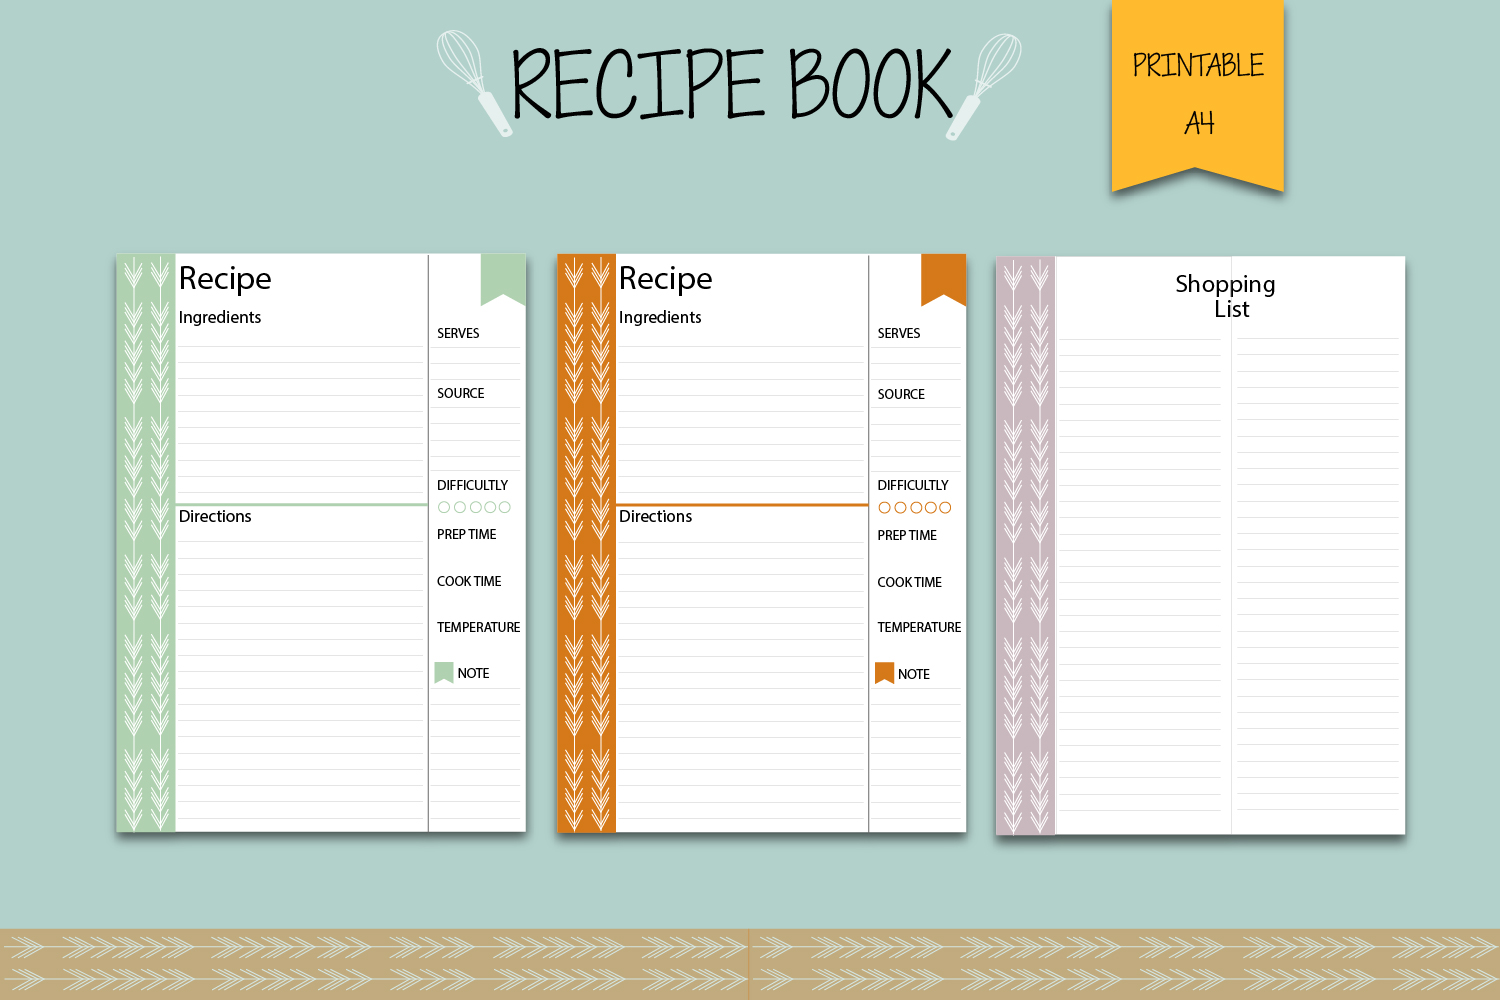 Recipe binder, Recipe book, Printable planner example image 5